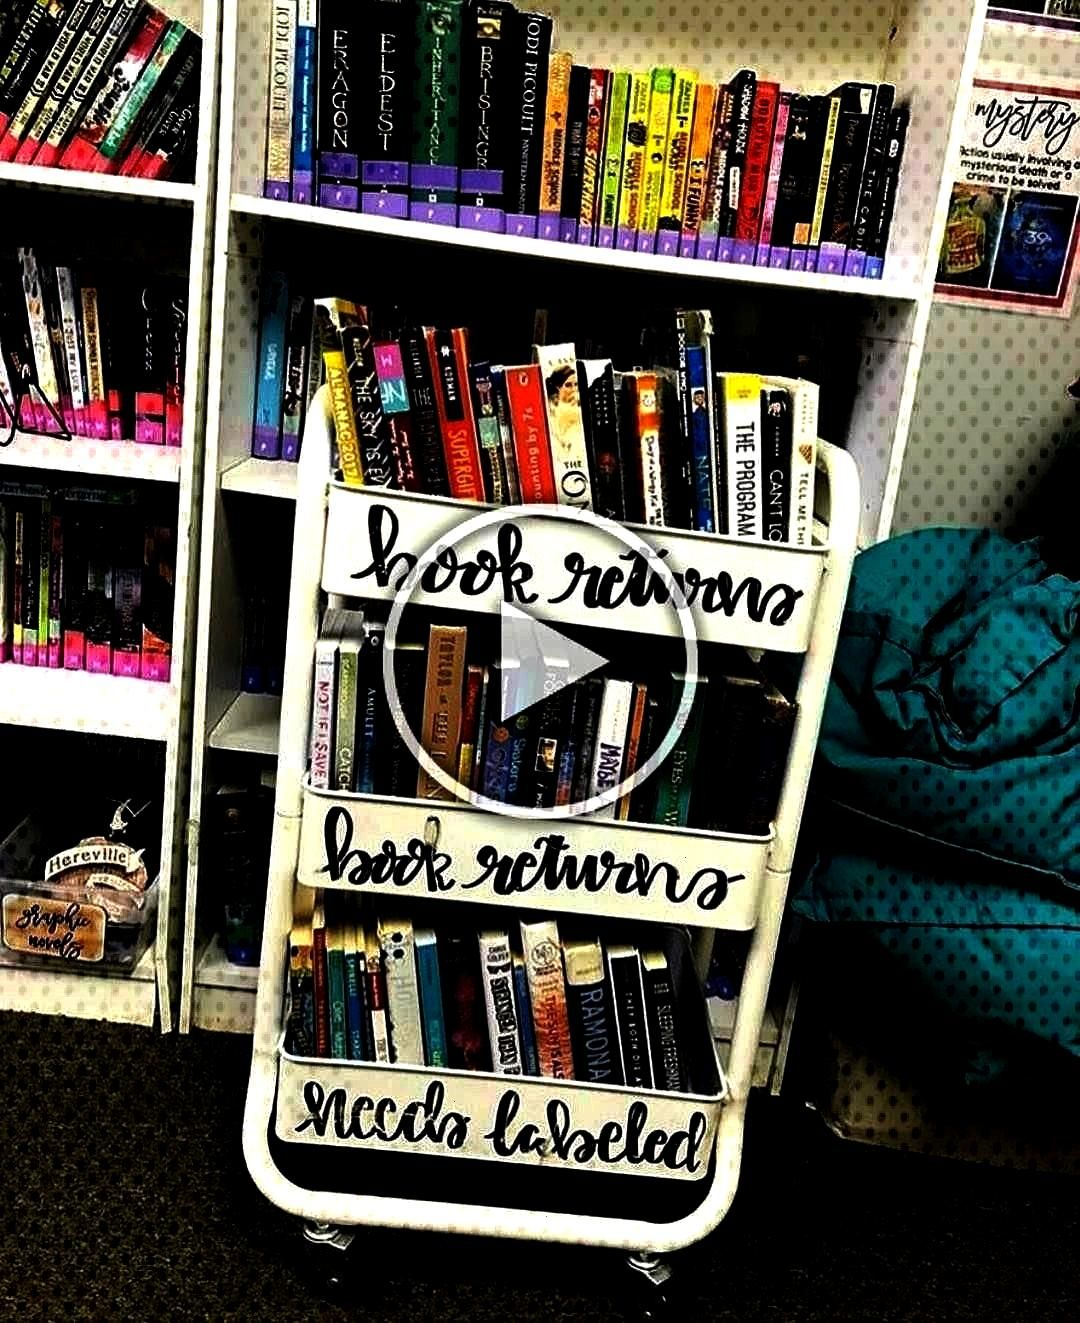 talk about classroom libraries... All of my books are organized on the shelves by genre, BUT for so